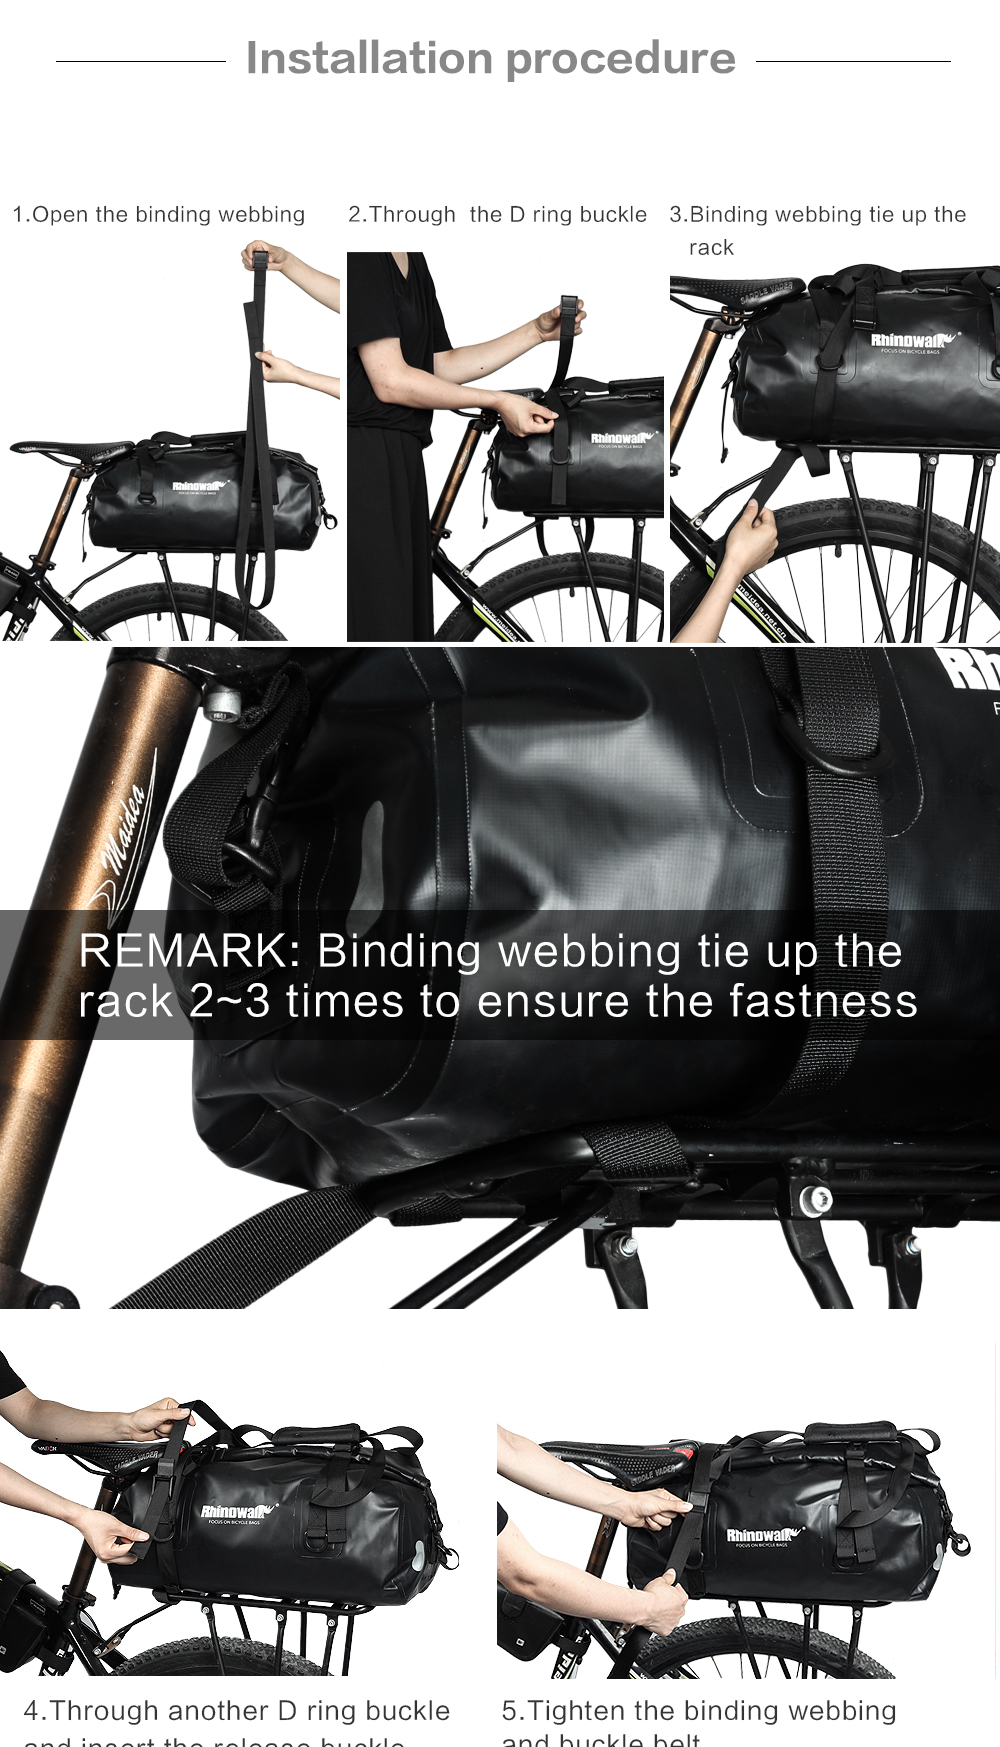 Rhinowalk Bicycle Luggage Bags 20L Full Waterproof for Road Bike Rear Rack Trunk Cycling Saddle Storage Pannier Multi Travel Bag (21)